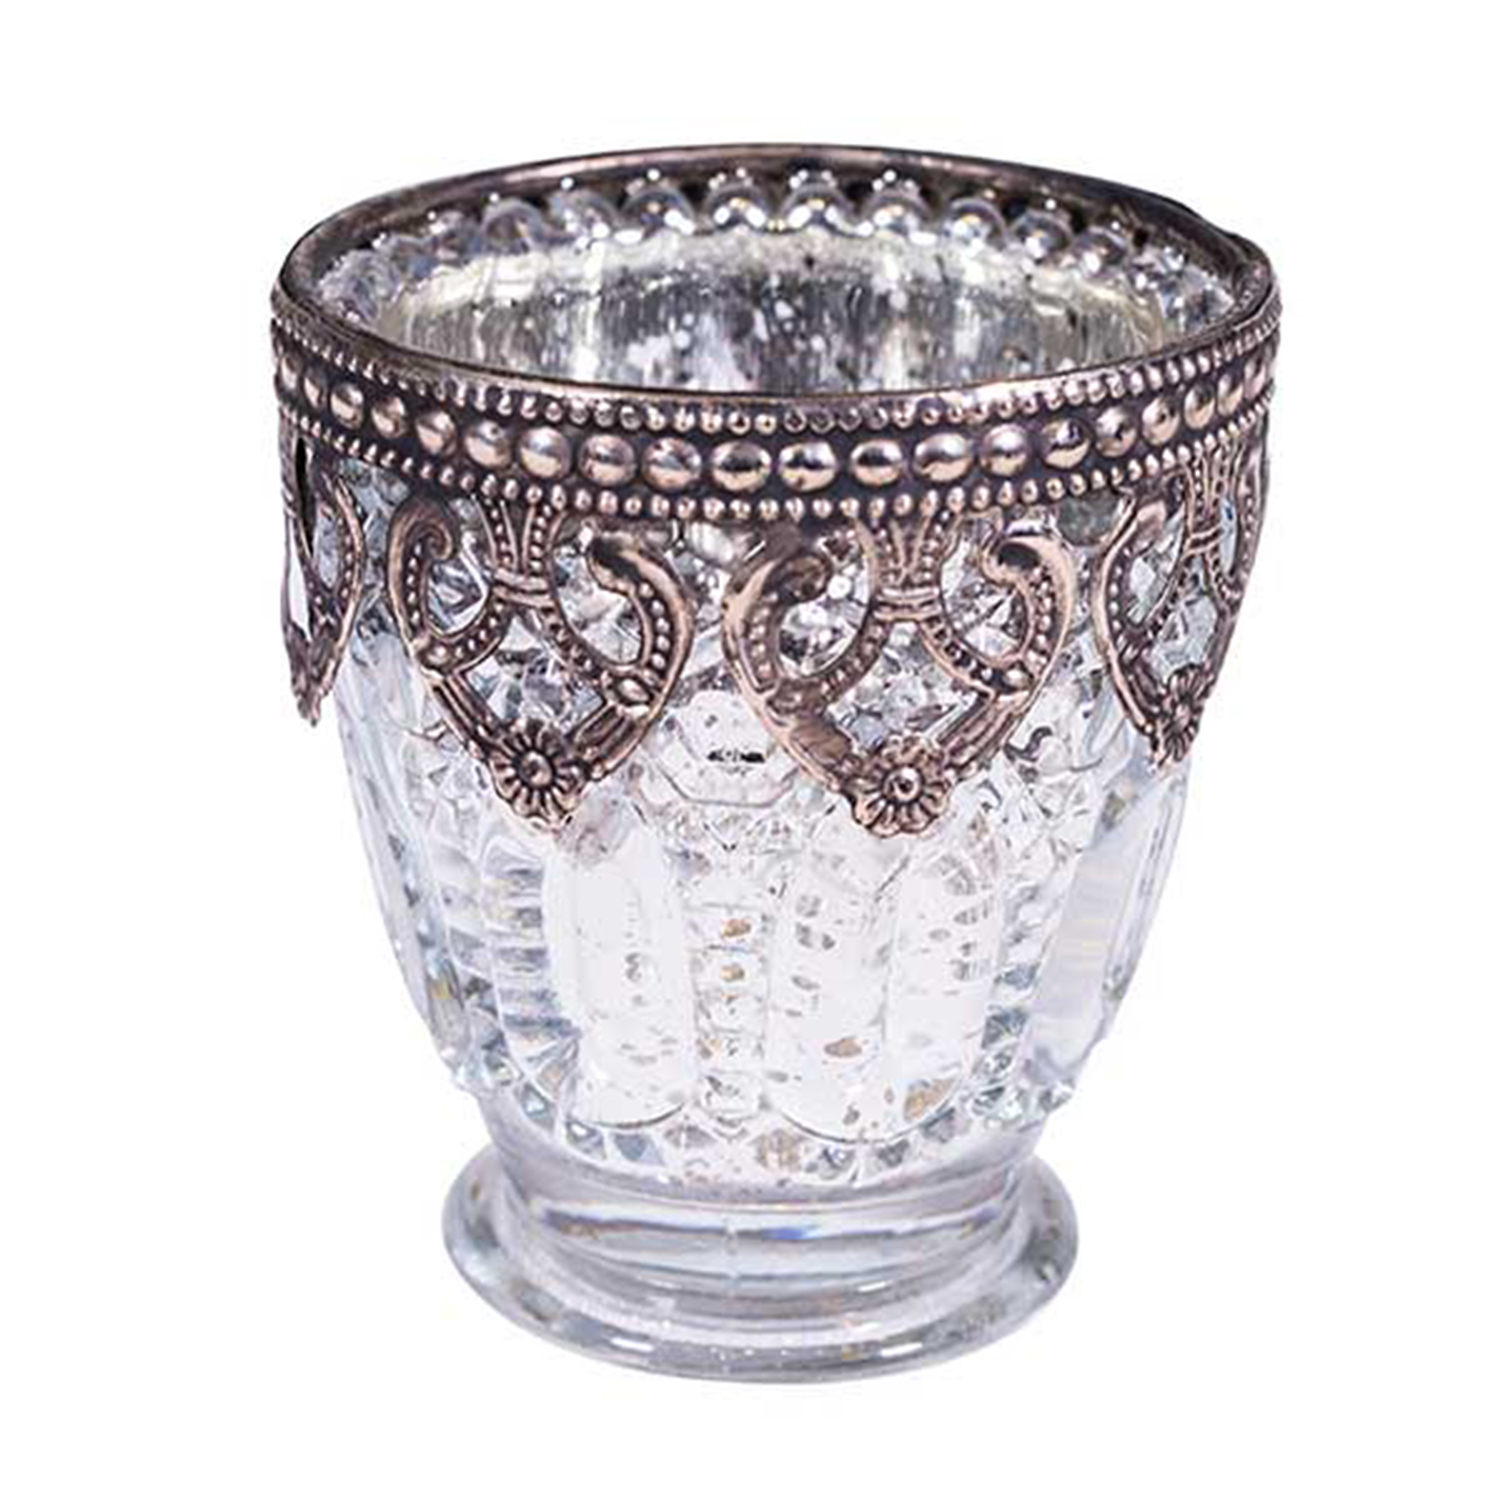 Silver Mercury Votive Candle Holder On Small Pedestal W Metal Rim 3 15 Tall 6 Pack